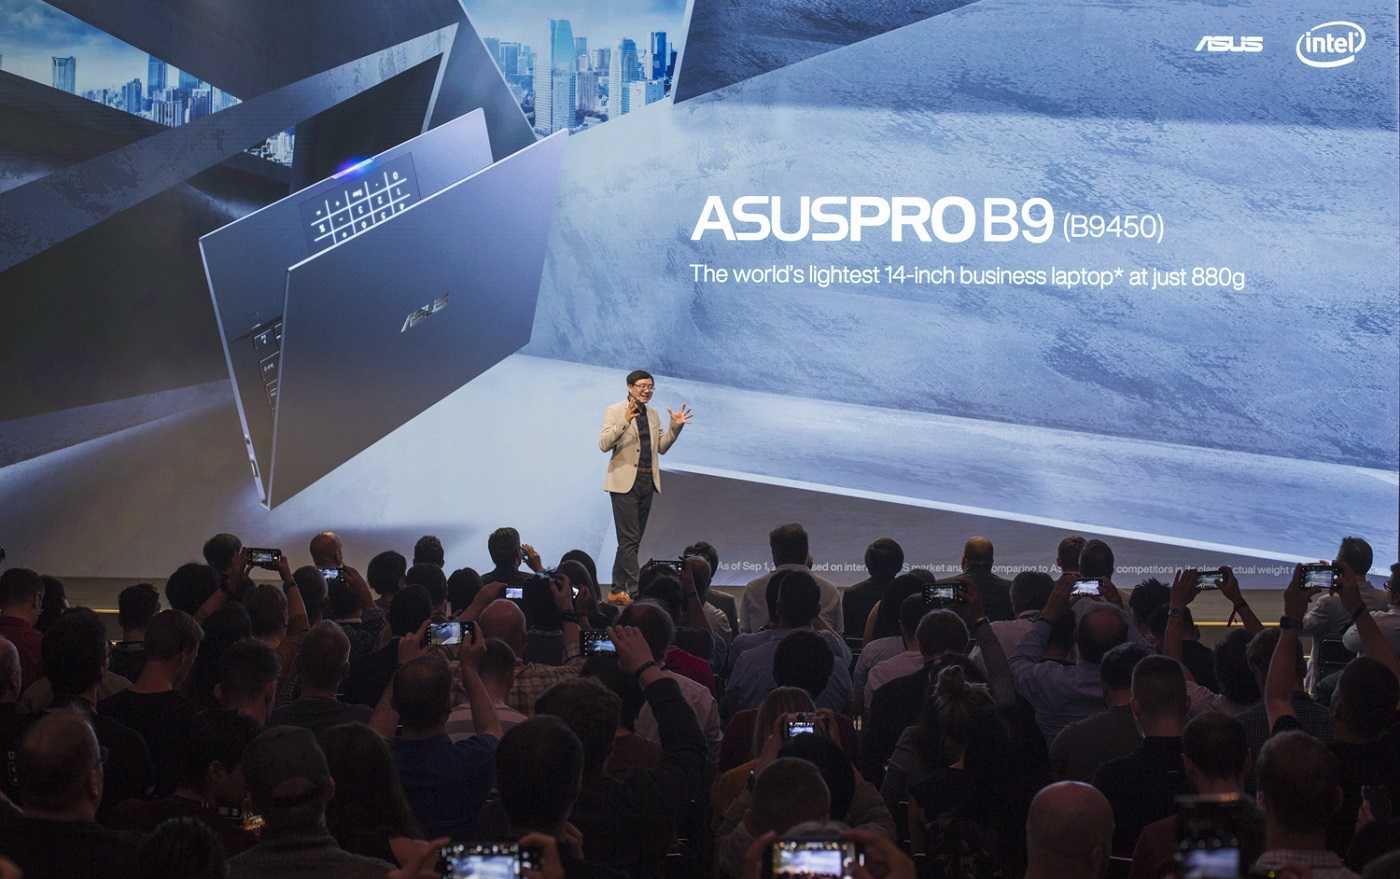 asus-introduces-asuspro-b9-the-worlds-lightest-14-inch-business-laptop-at-just-880-grams-jpg.8054